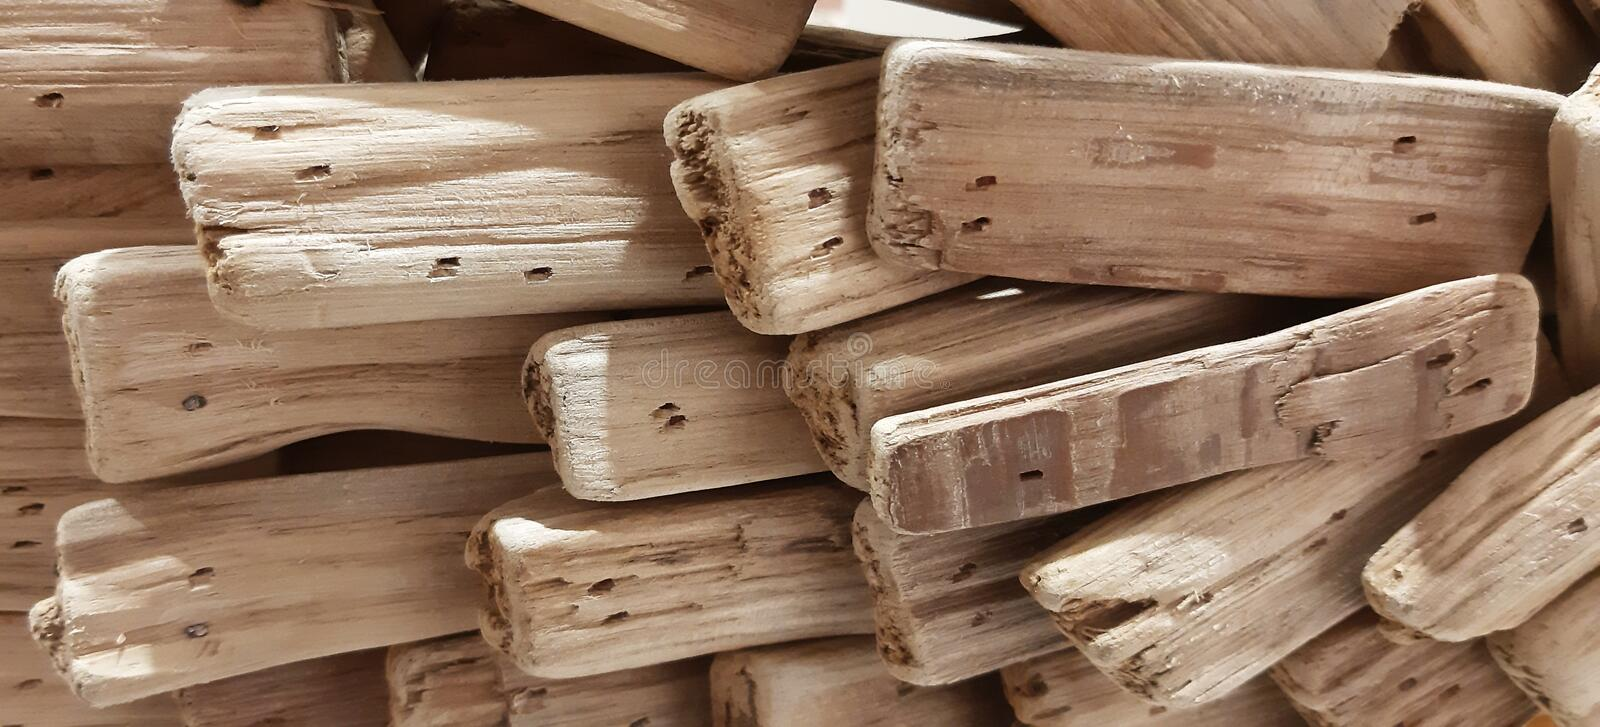 Wood pieces abstract texture background royalty free stock image